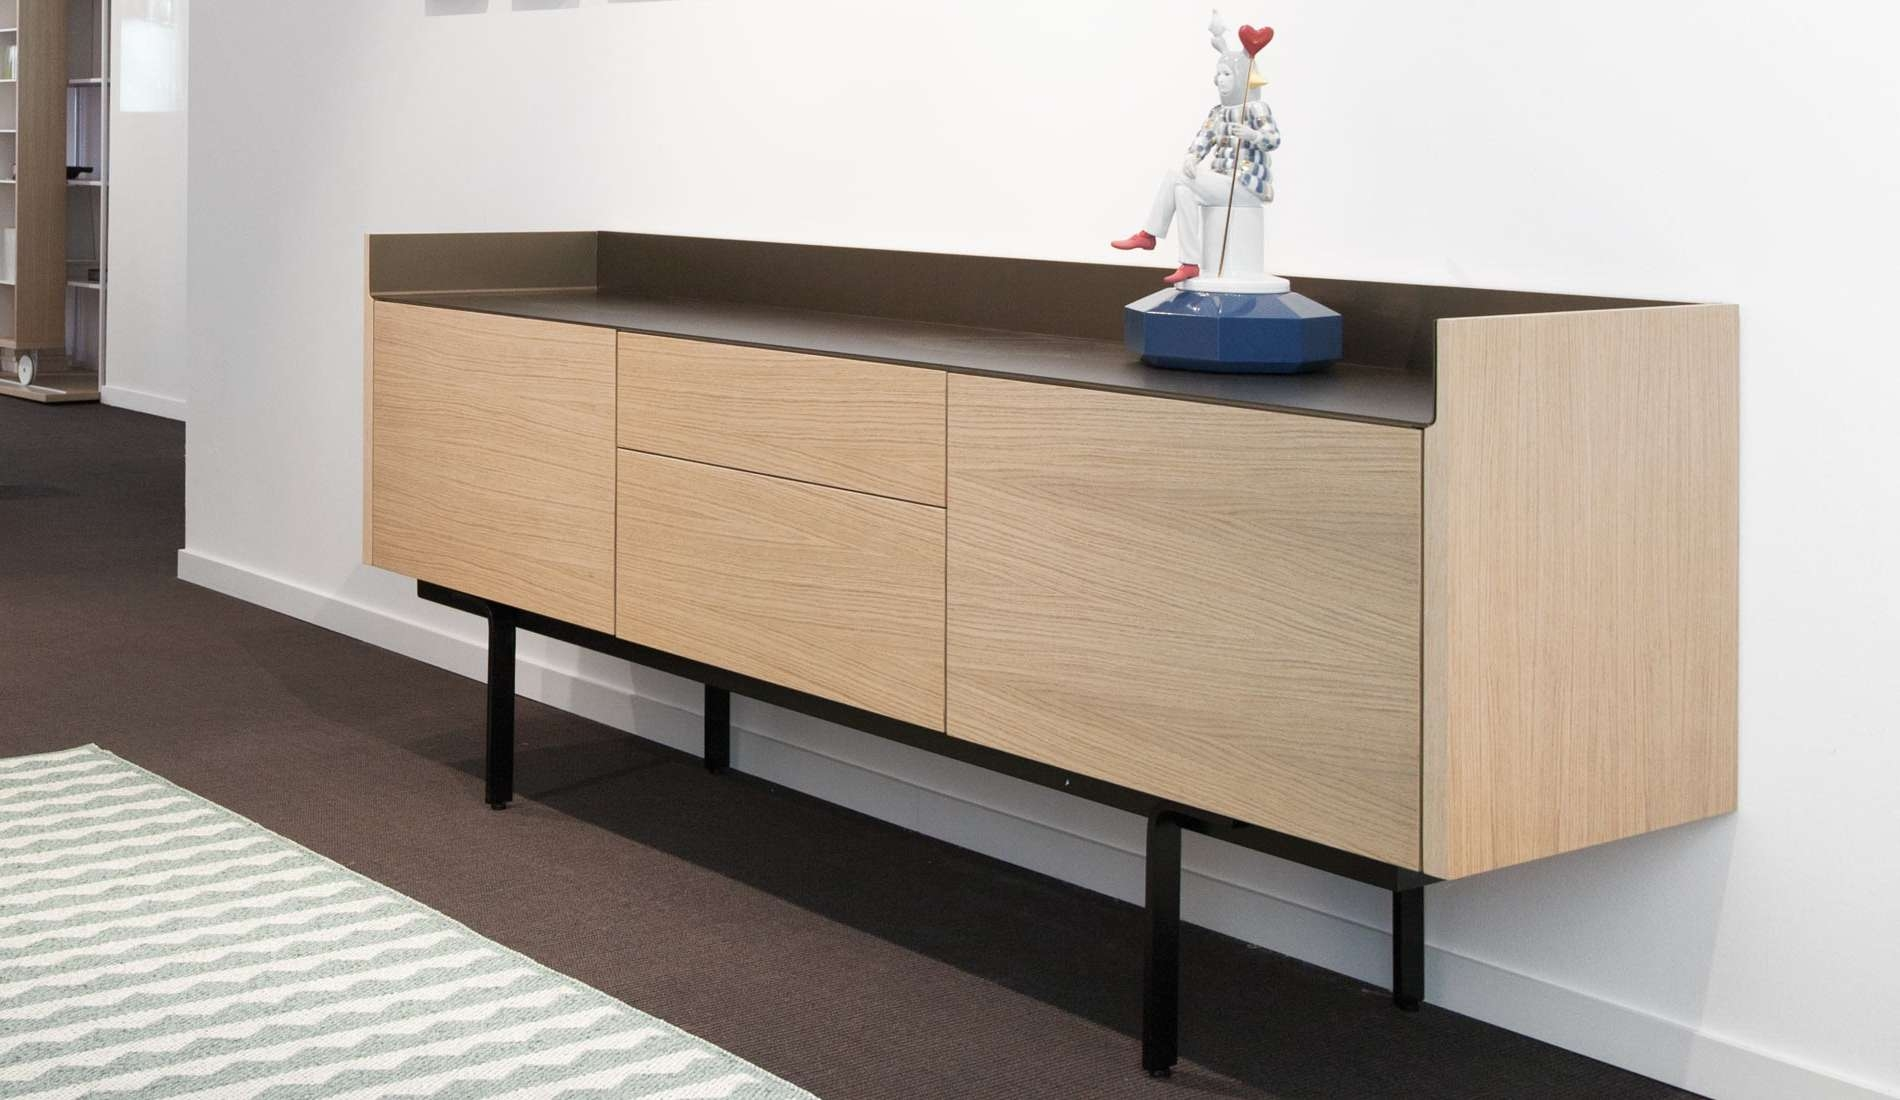 Punt Stockholm 3B Sideboard | Dopo Domani Throughout Stockholm Sideboards (View 7 of 20)